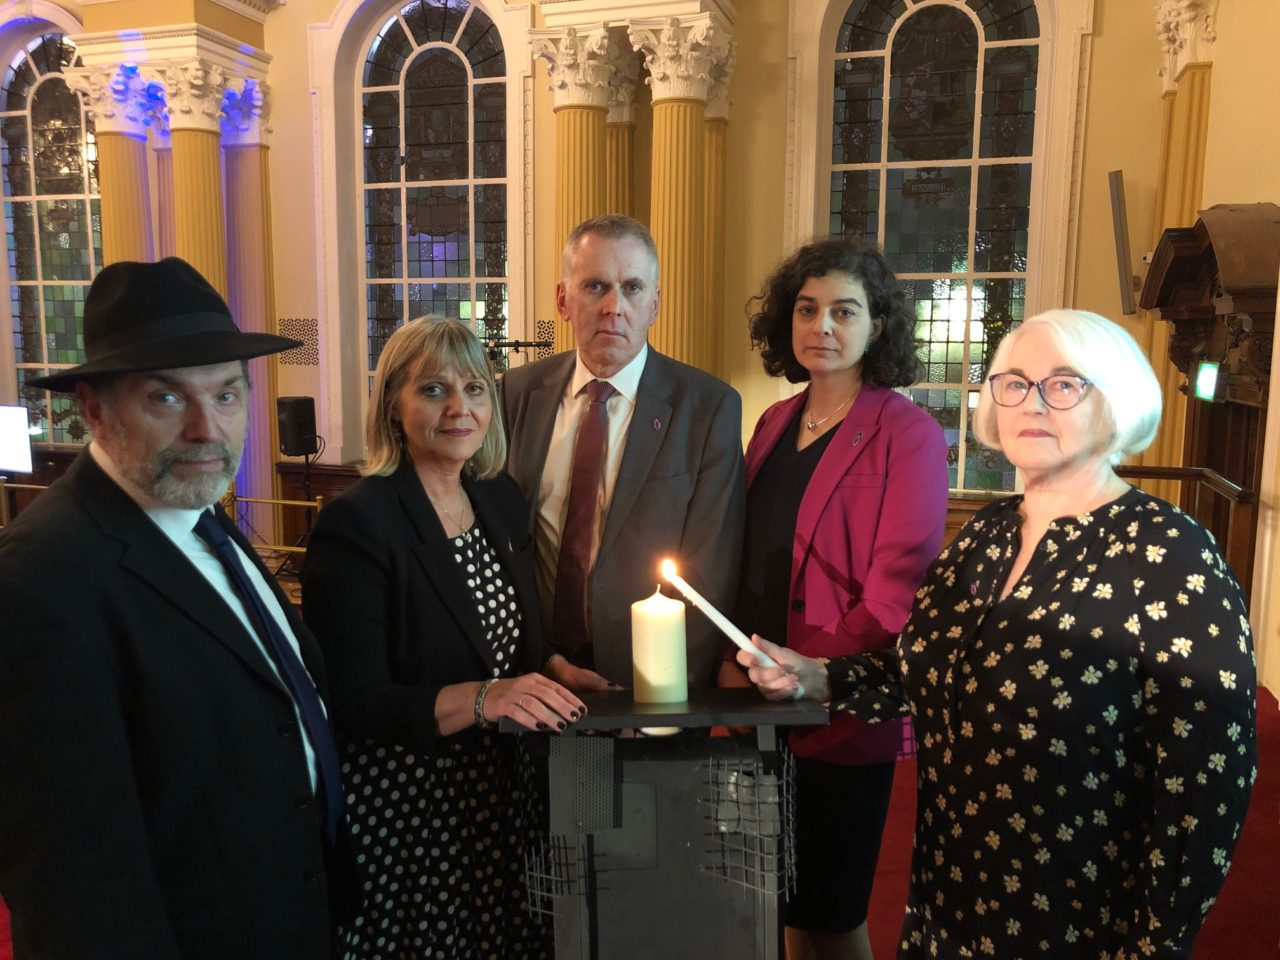 Northern Ireland Ceremony for HMD 2019